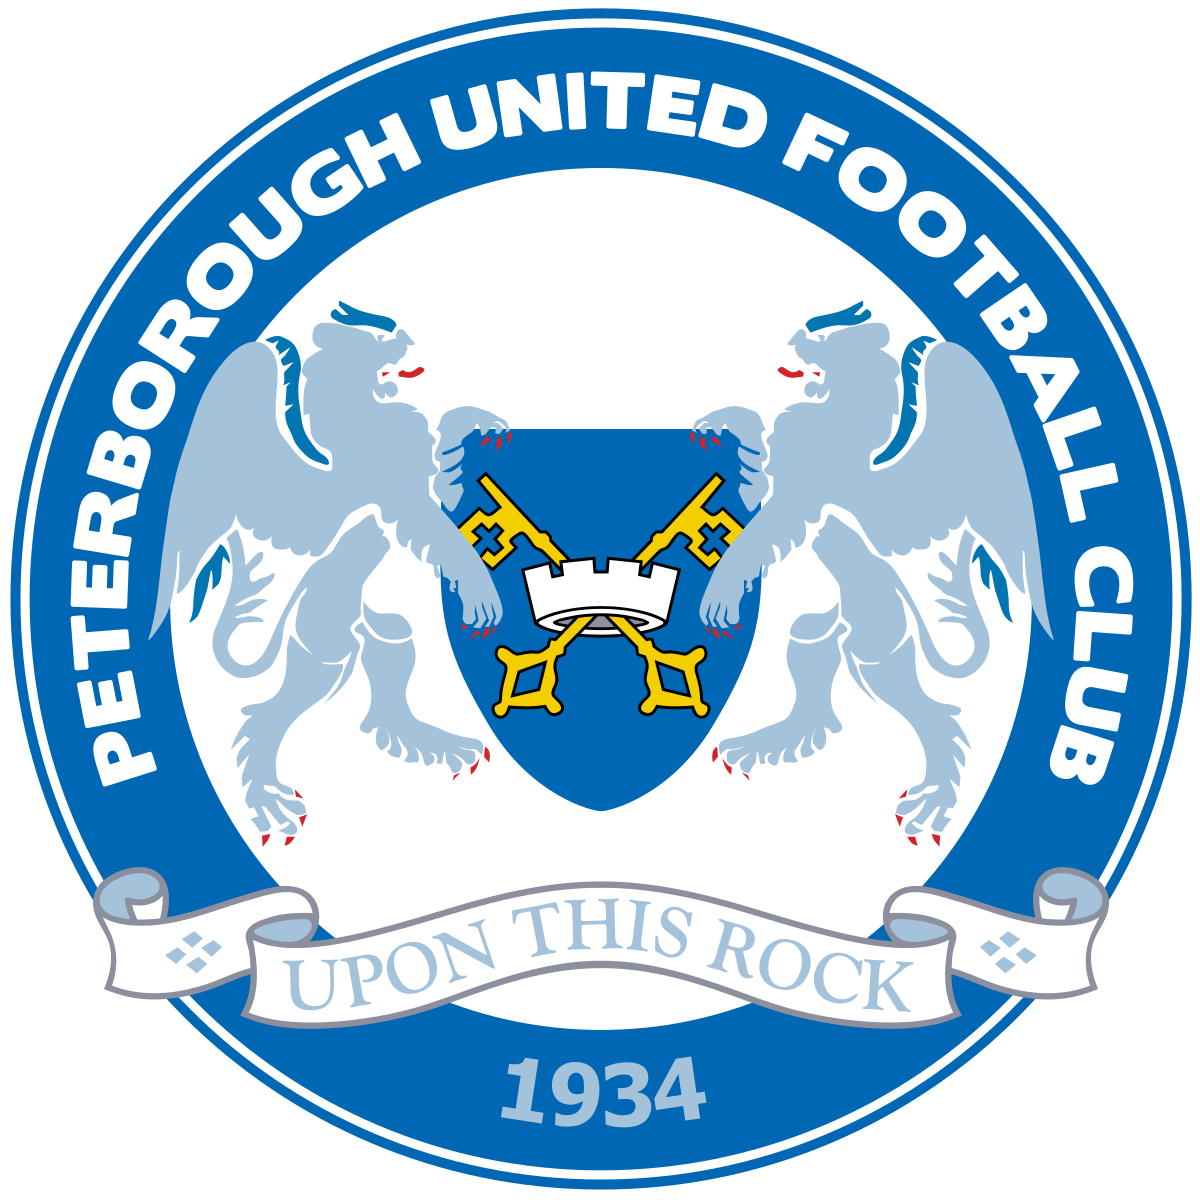 Peterborough united crest